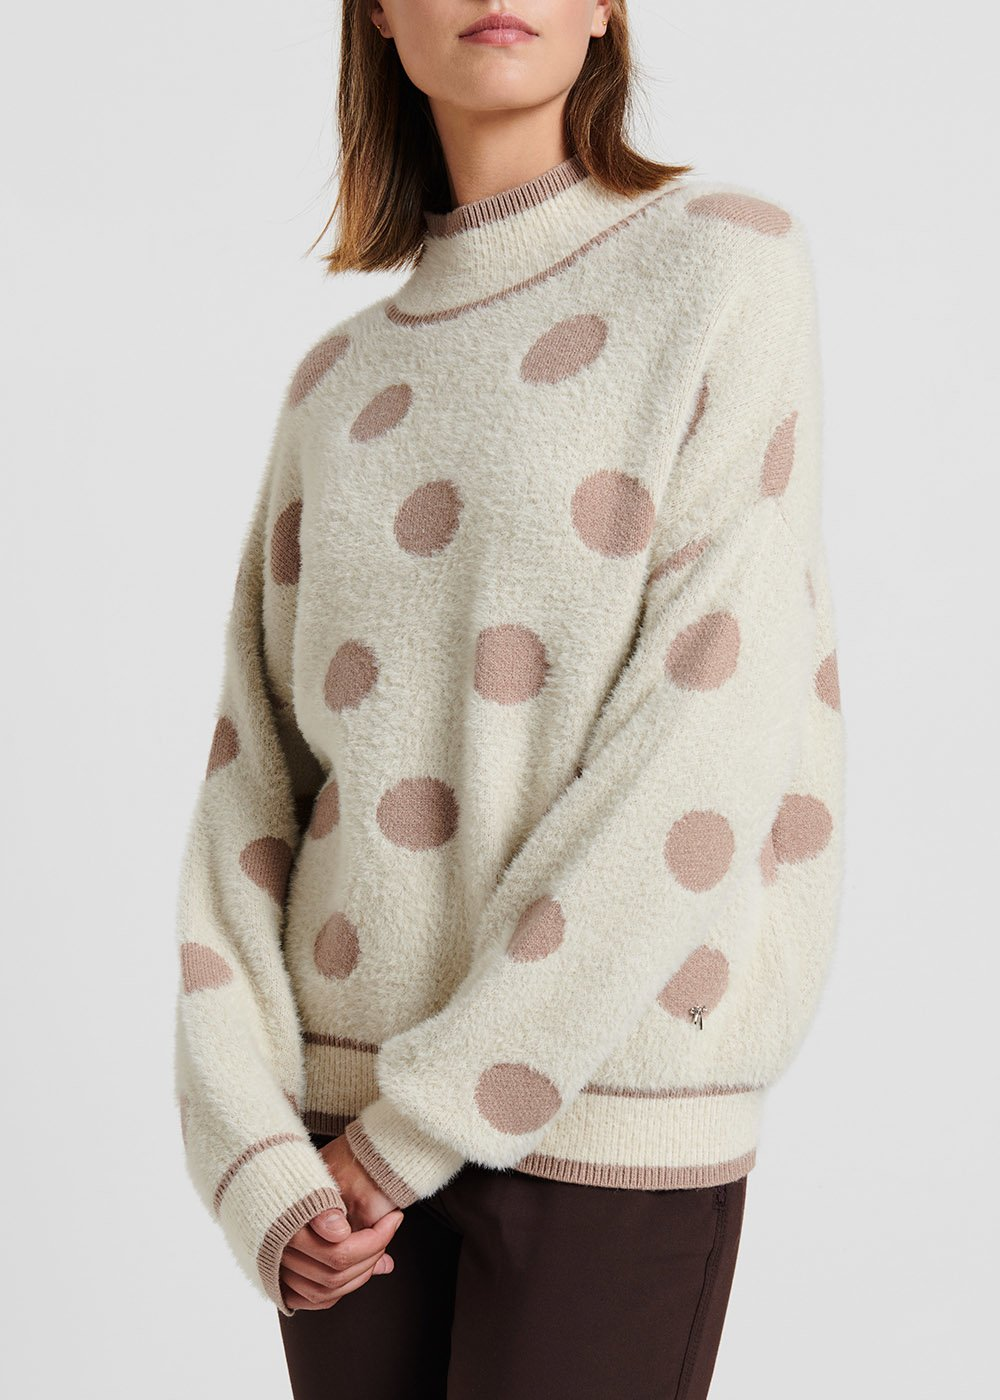 Light beige viscose sweater with fur effect fabric with polka dots - Light Beige / Suolo / Pois - Woman